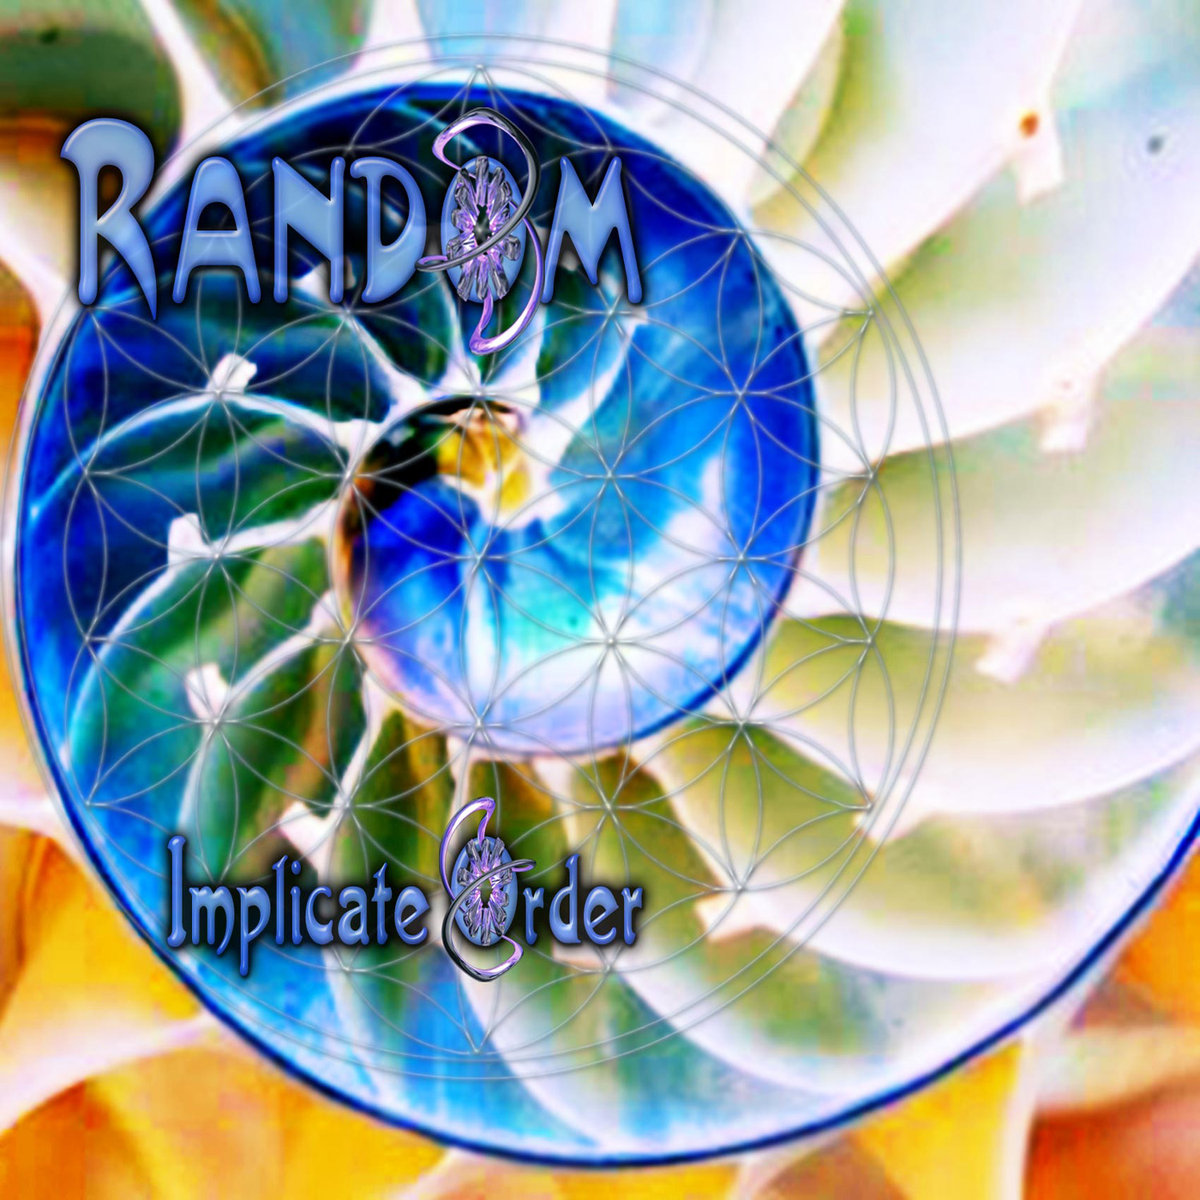 Random - The Explicate @ 'The Implicate Order' album (electronic, goa)